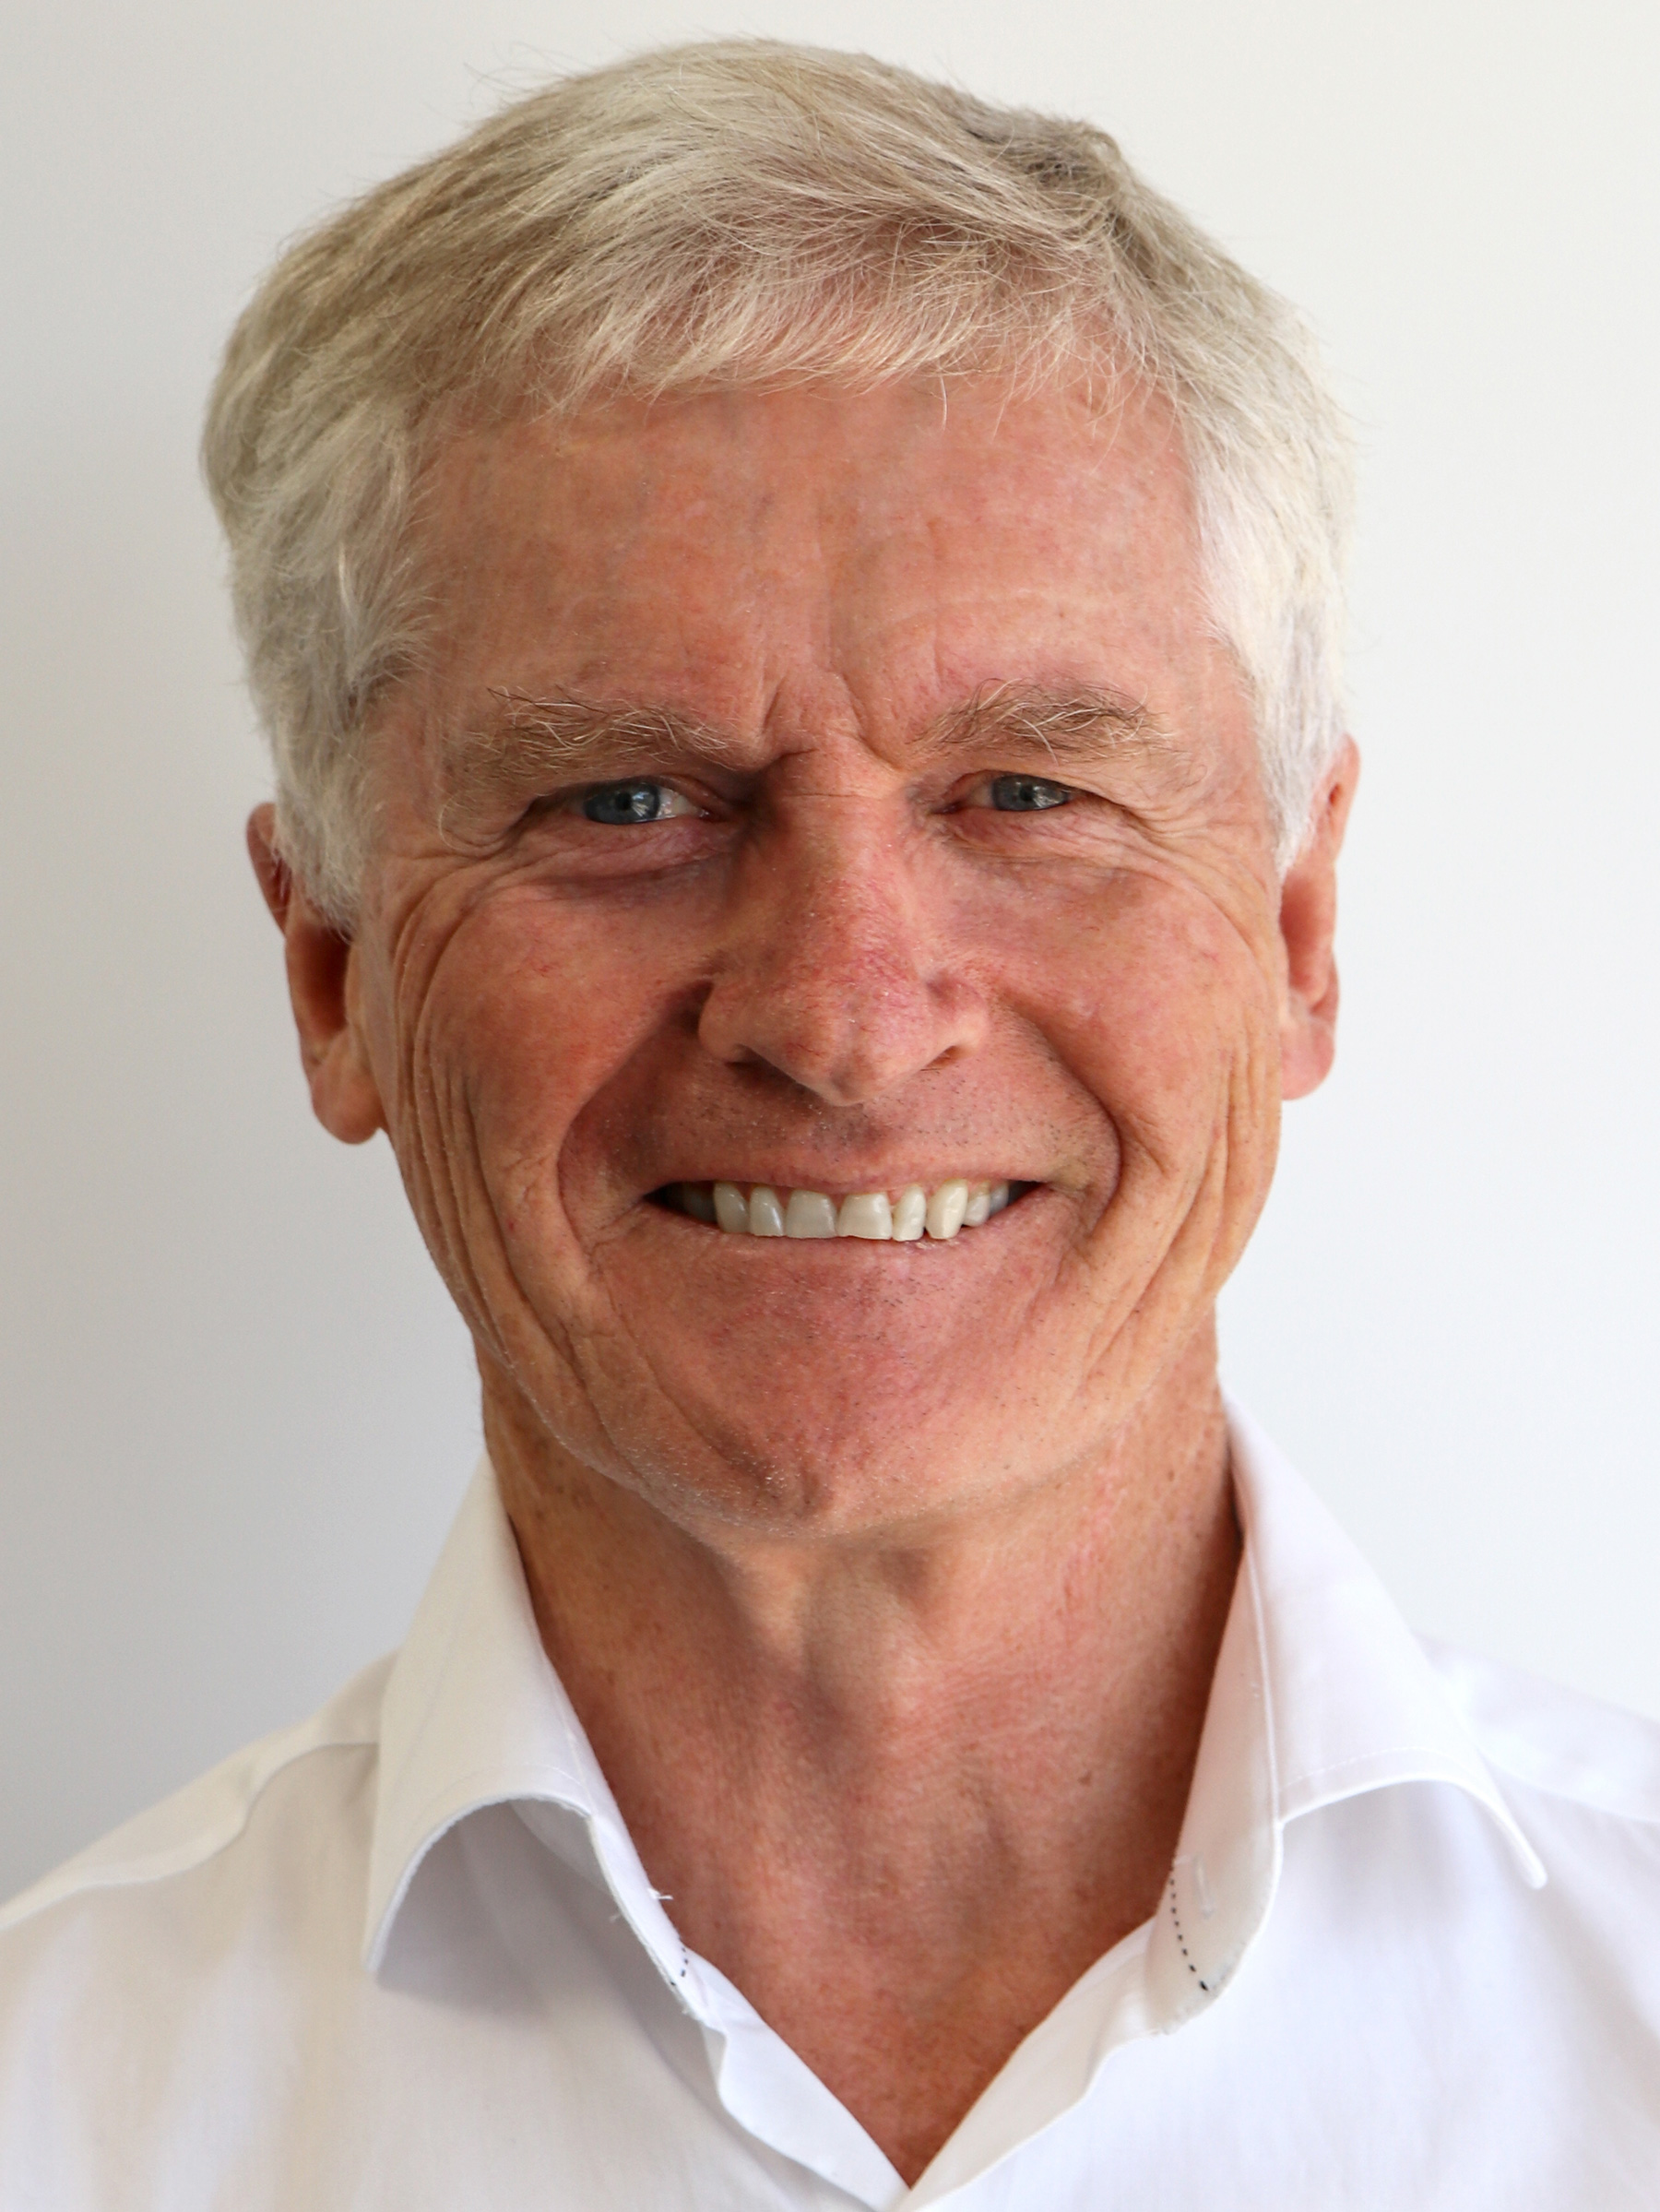 Portrait Of Mark Ryan, Board Member At Interact Australia